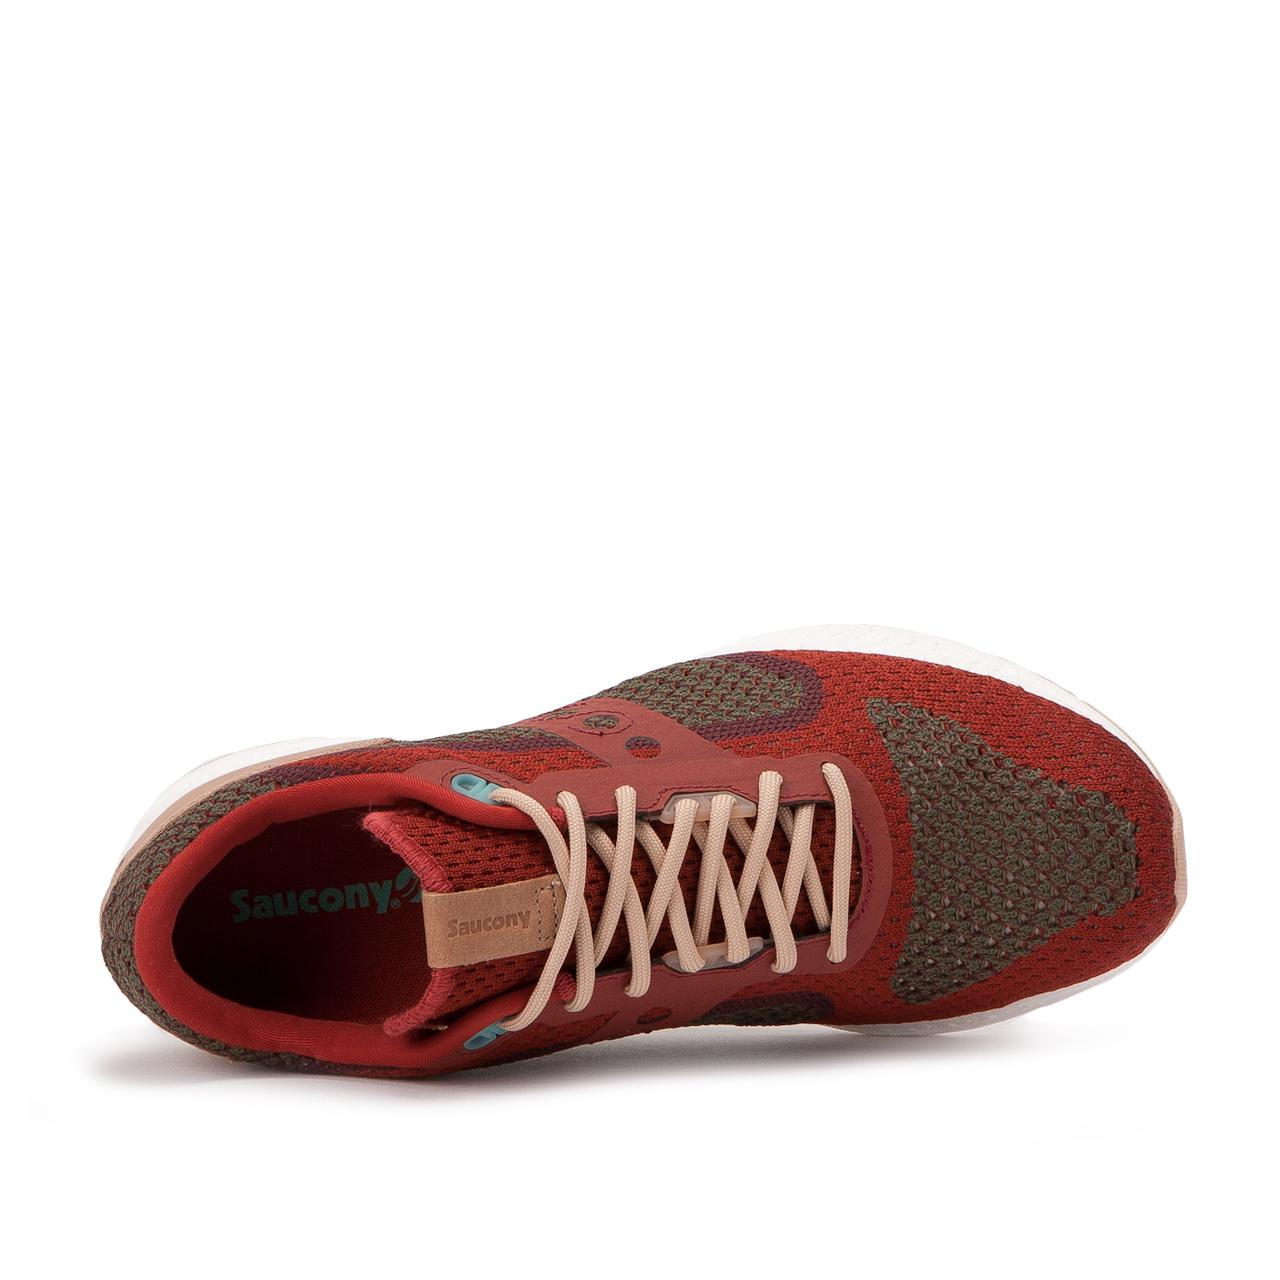 separation shoes 3f726 70715 Men's Red Shadow 5000 Evr